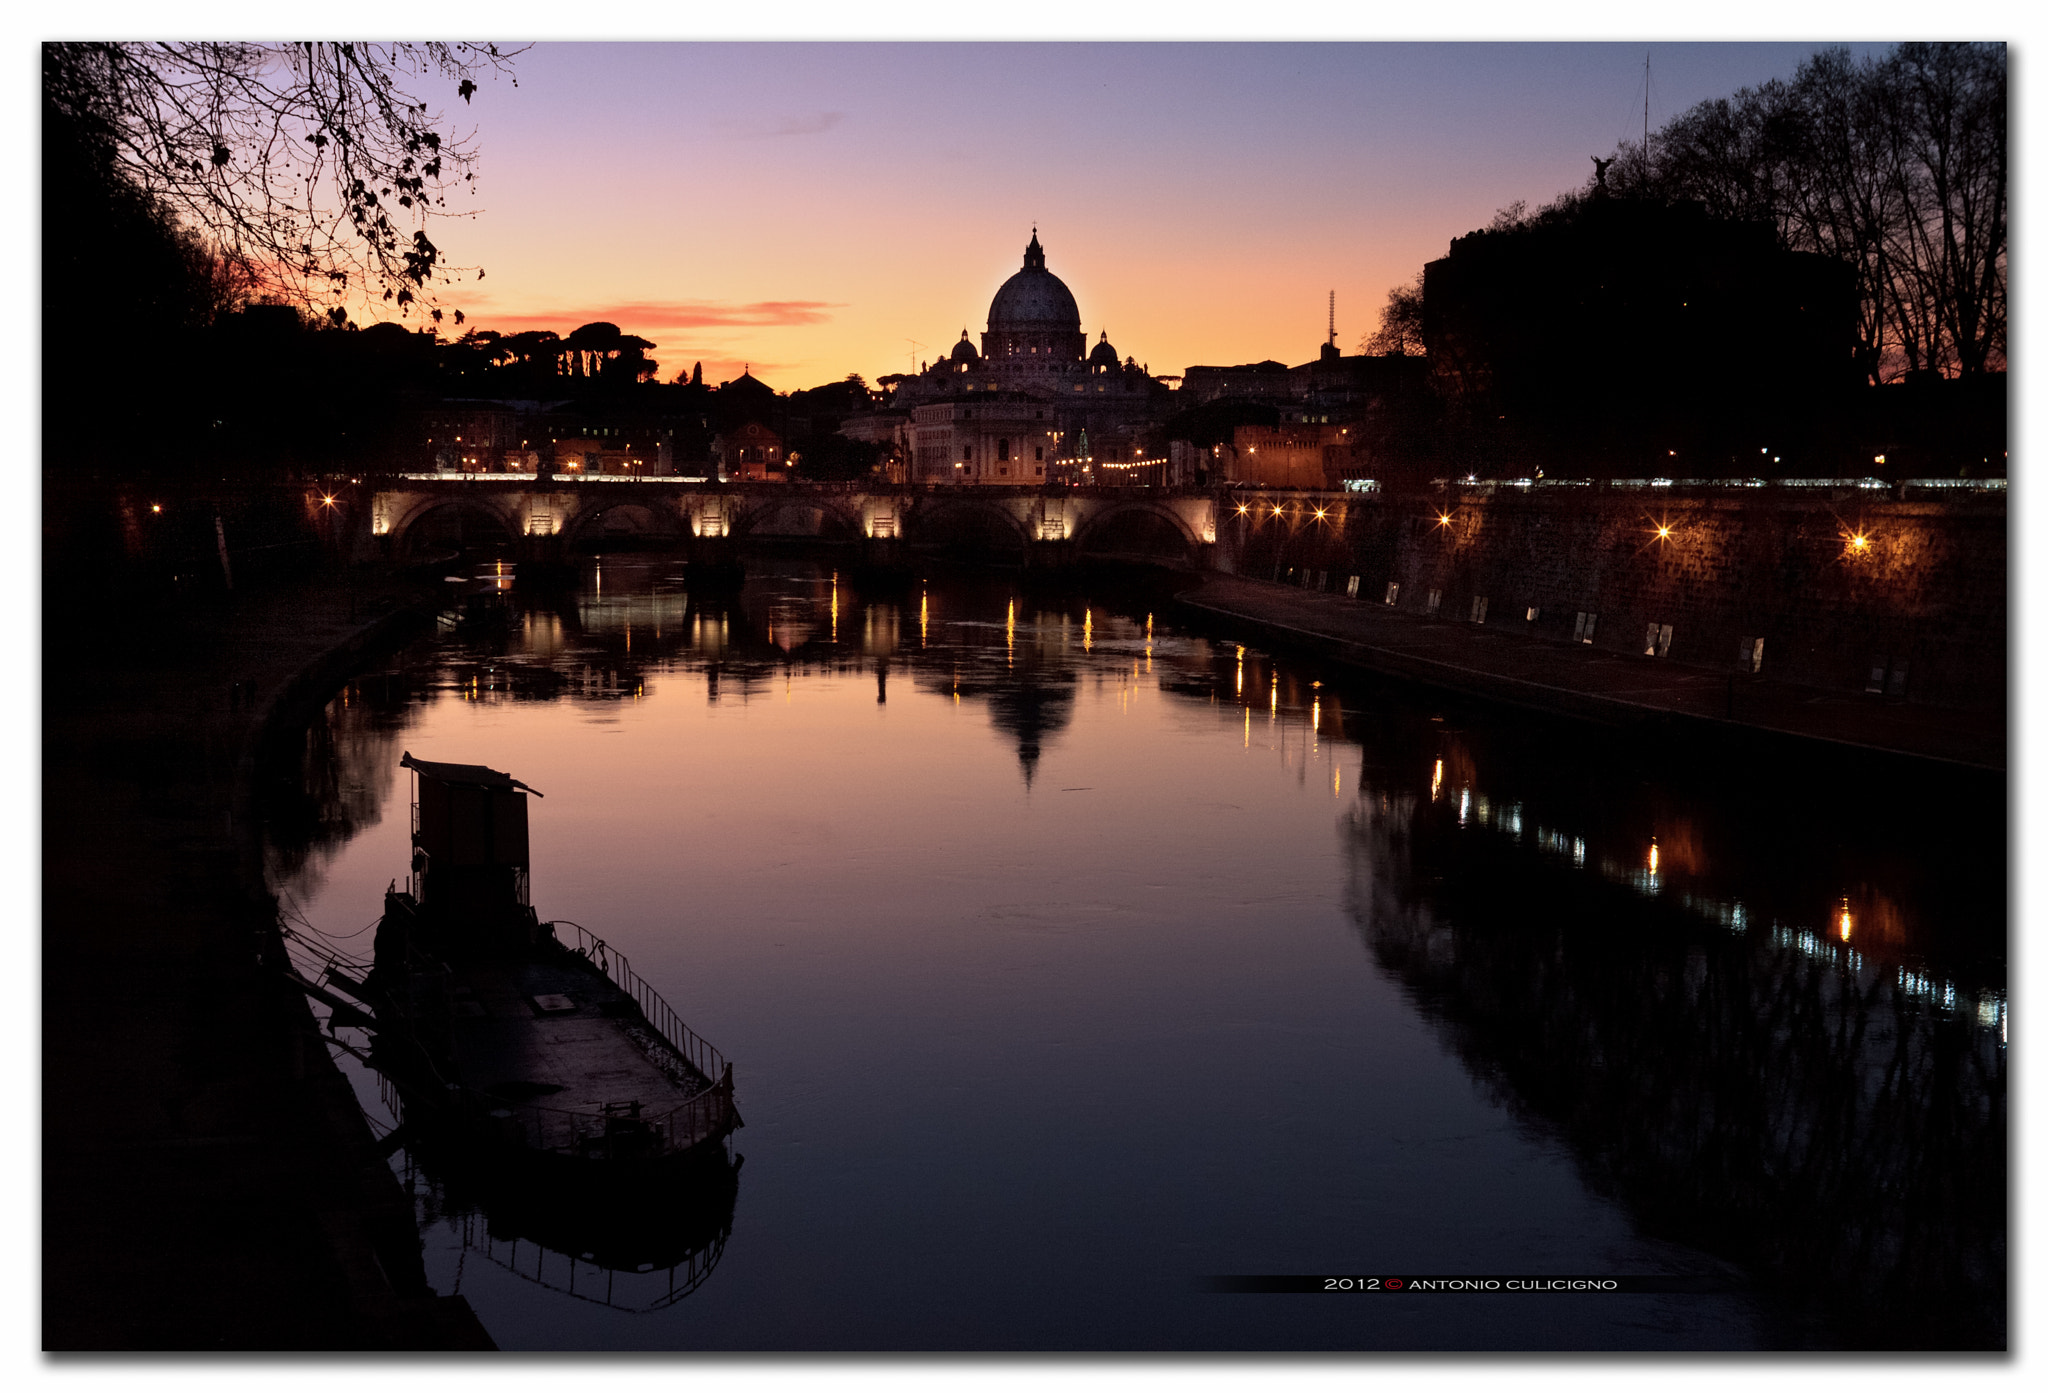 Photograph sunset in Rome by Antonio Culicigno on 500px